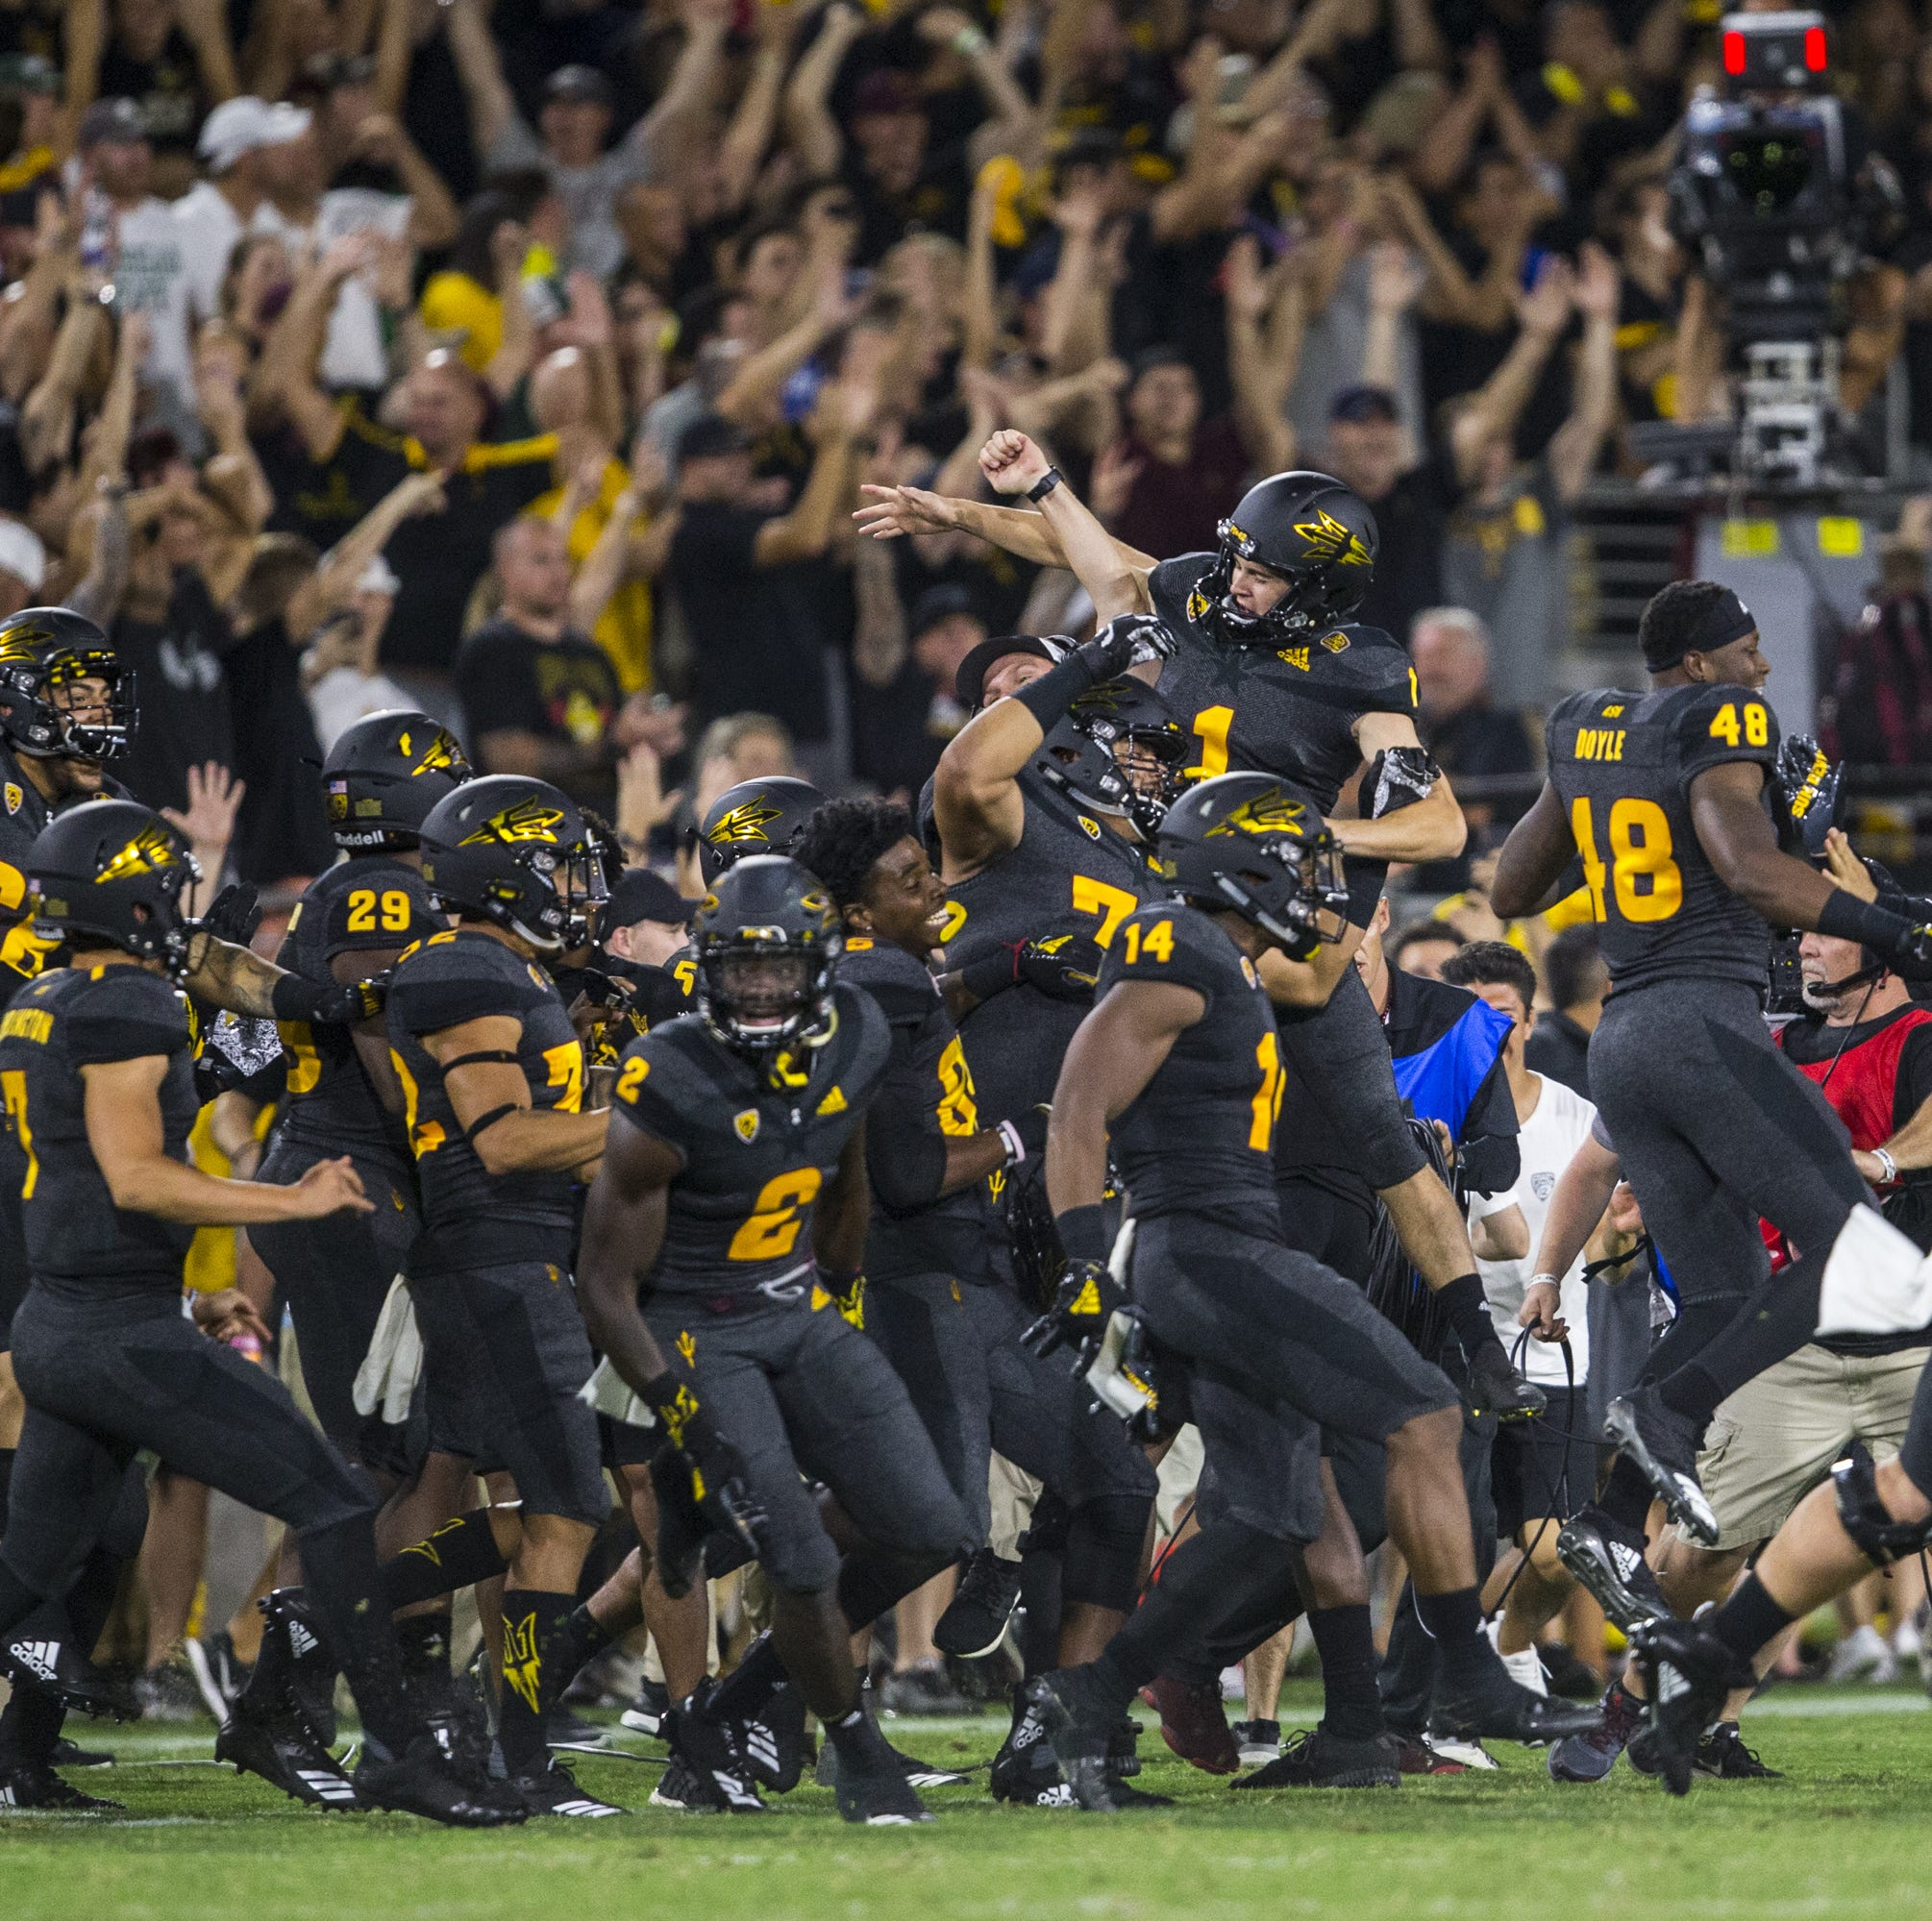 Pac-12 football power rankings: Where is ASU after big win over Michigan State?